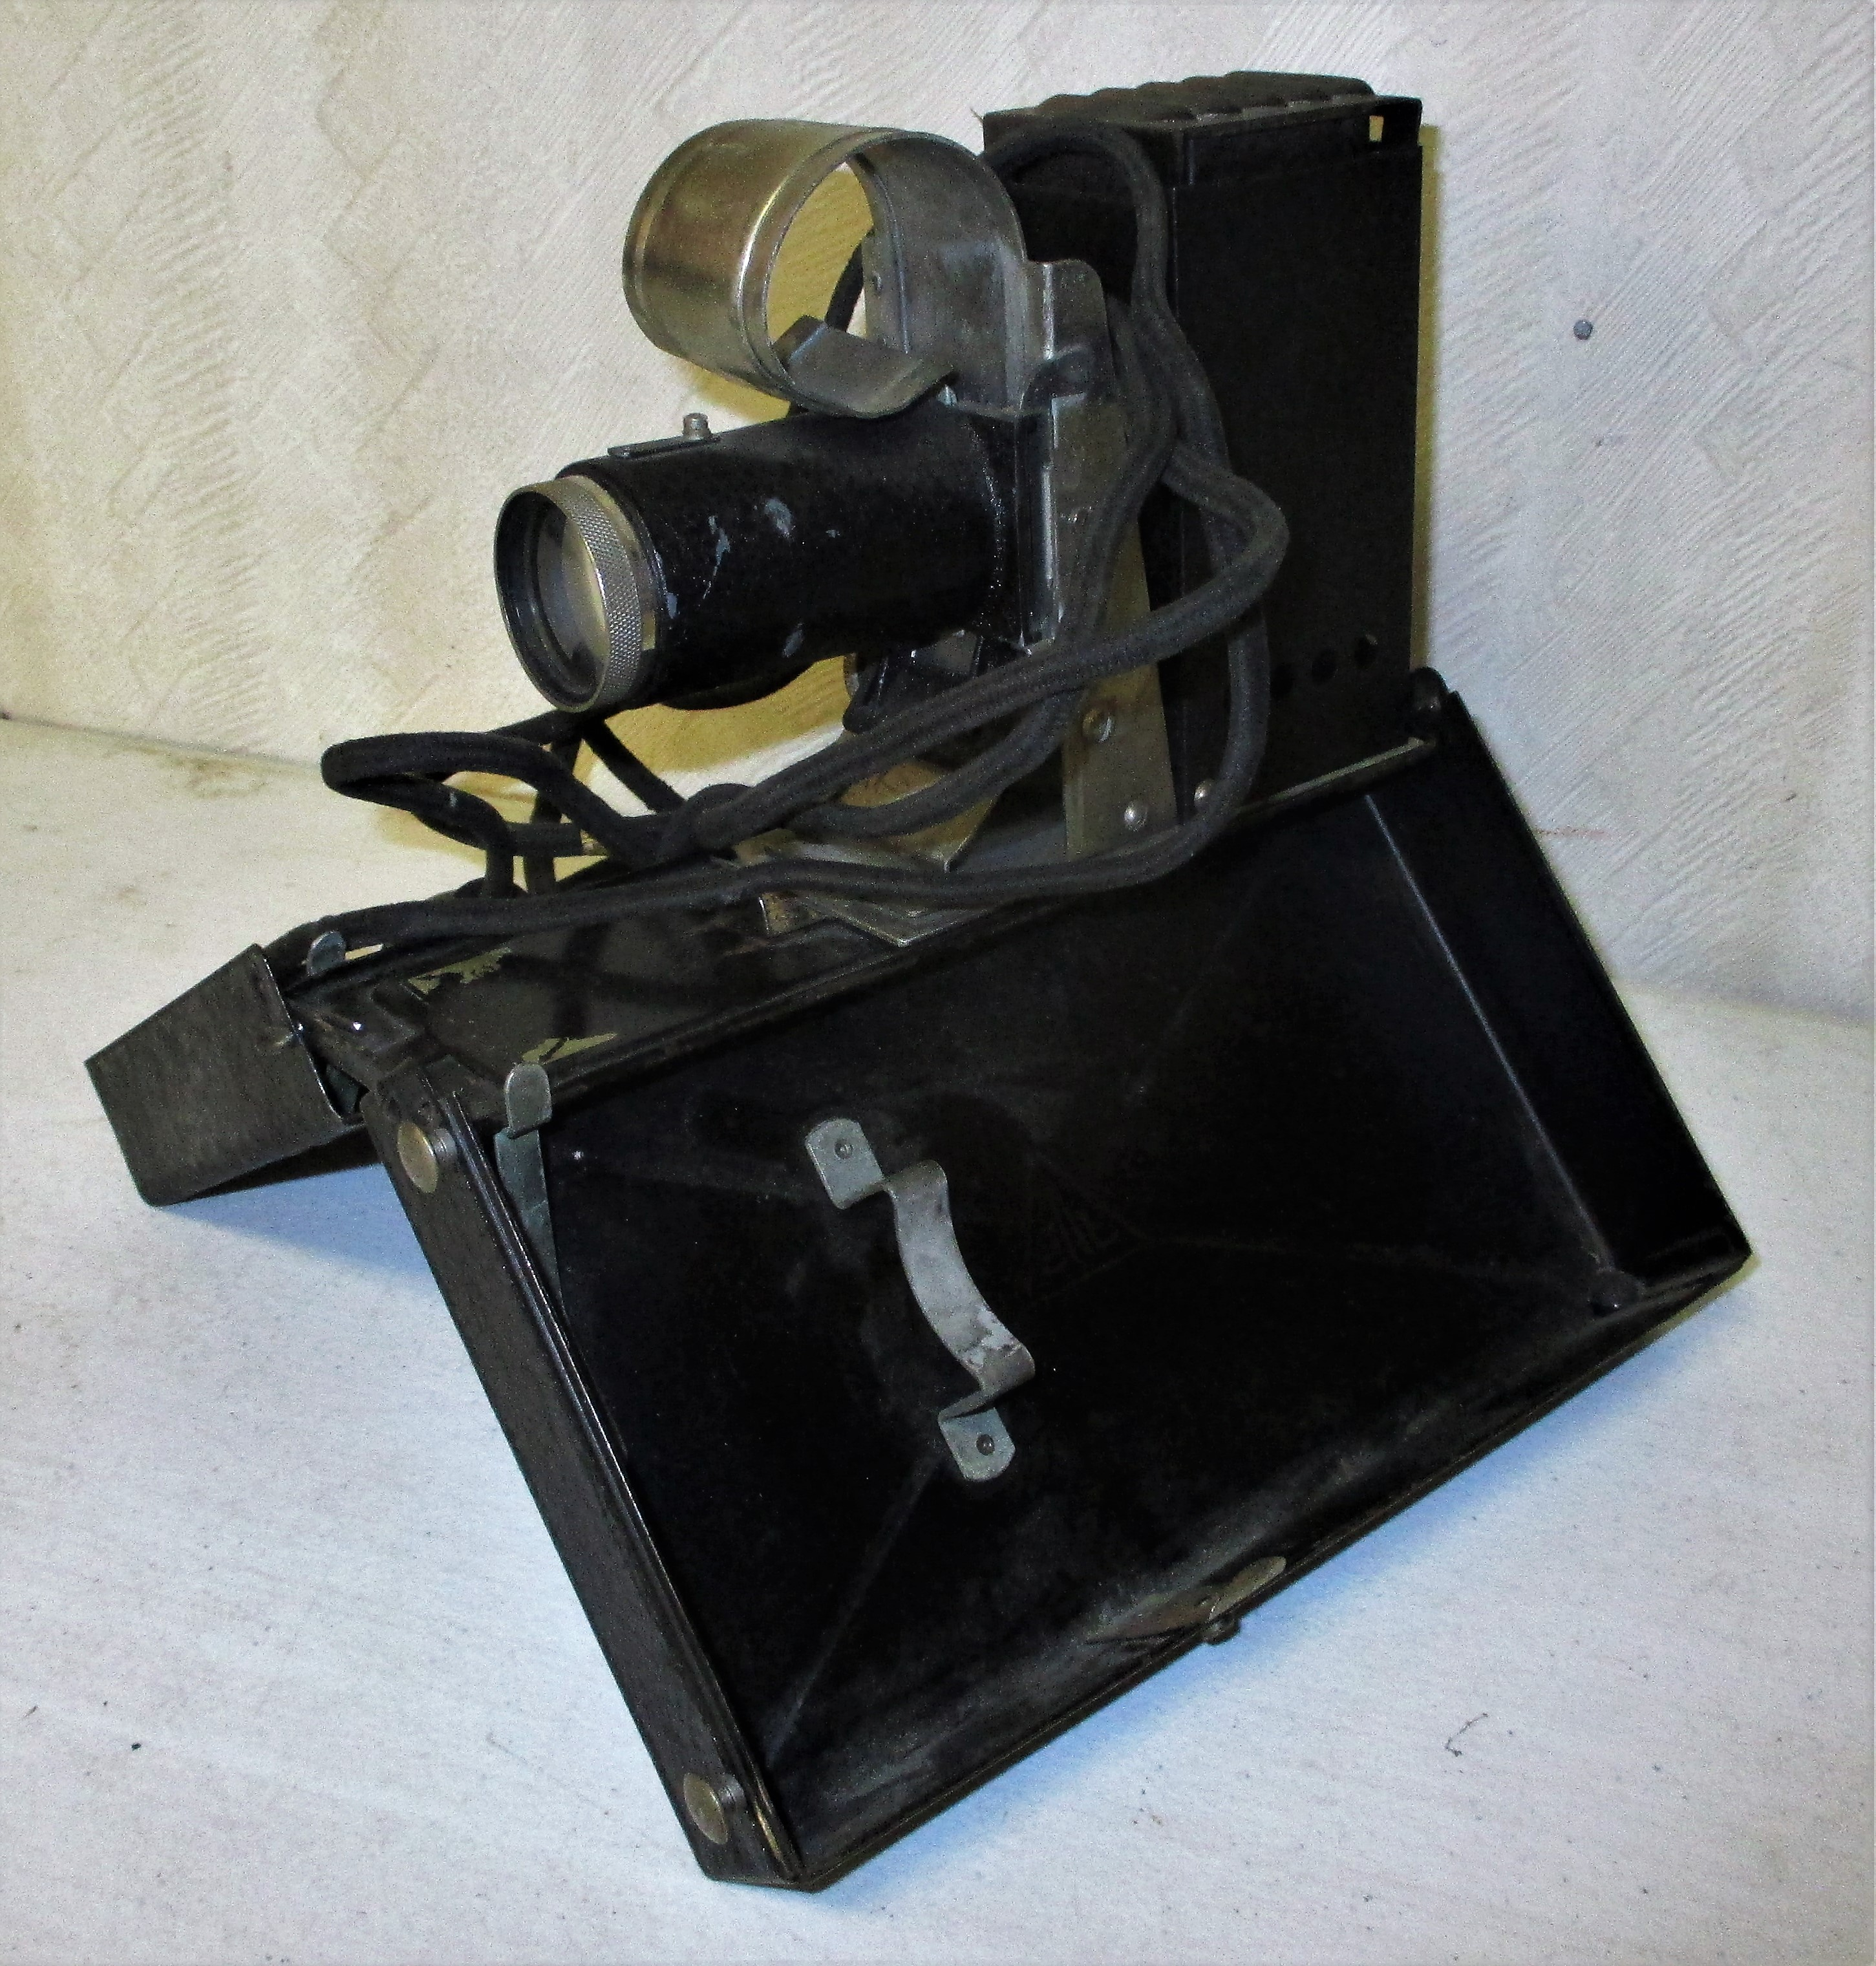 109: Society For Education Picture Projector